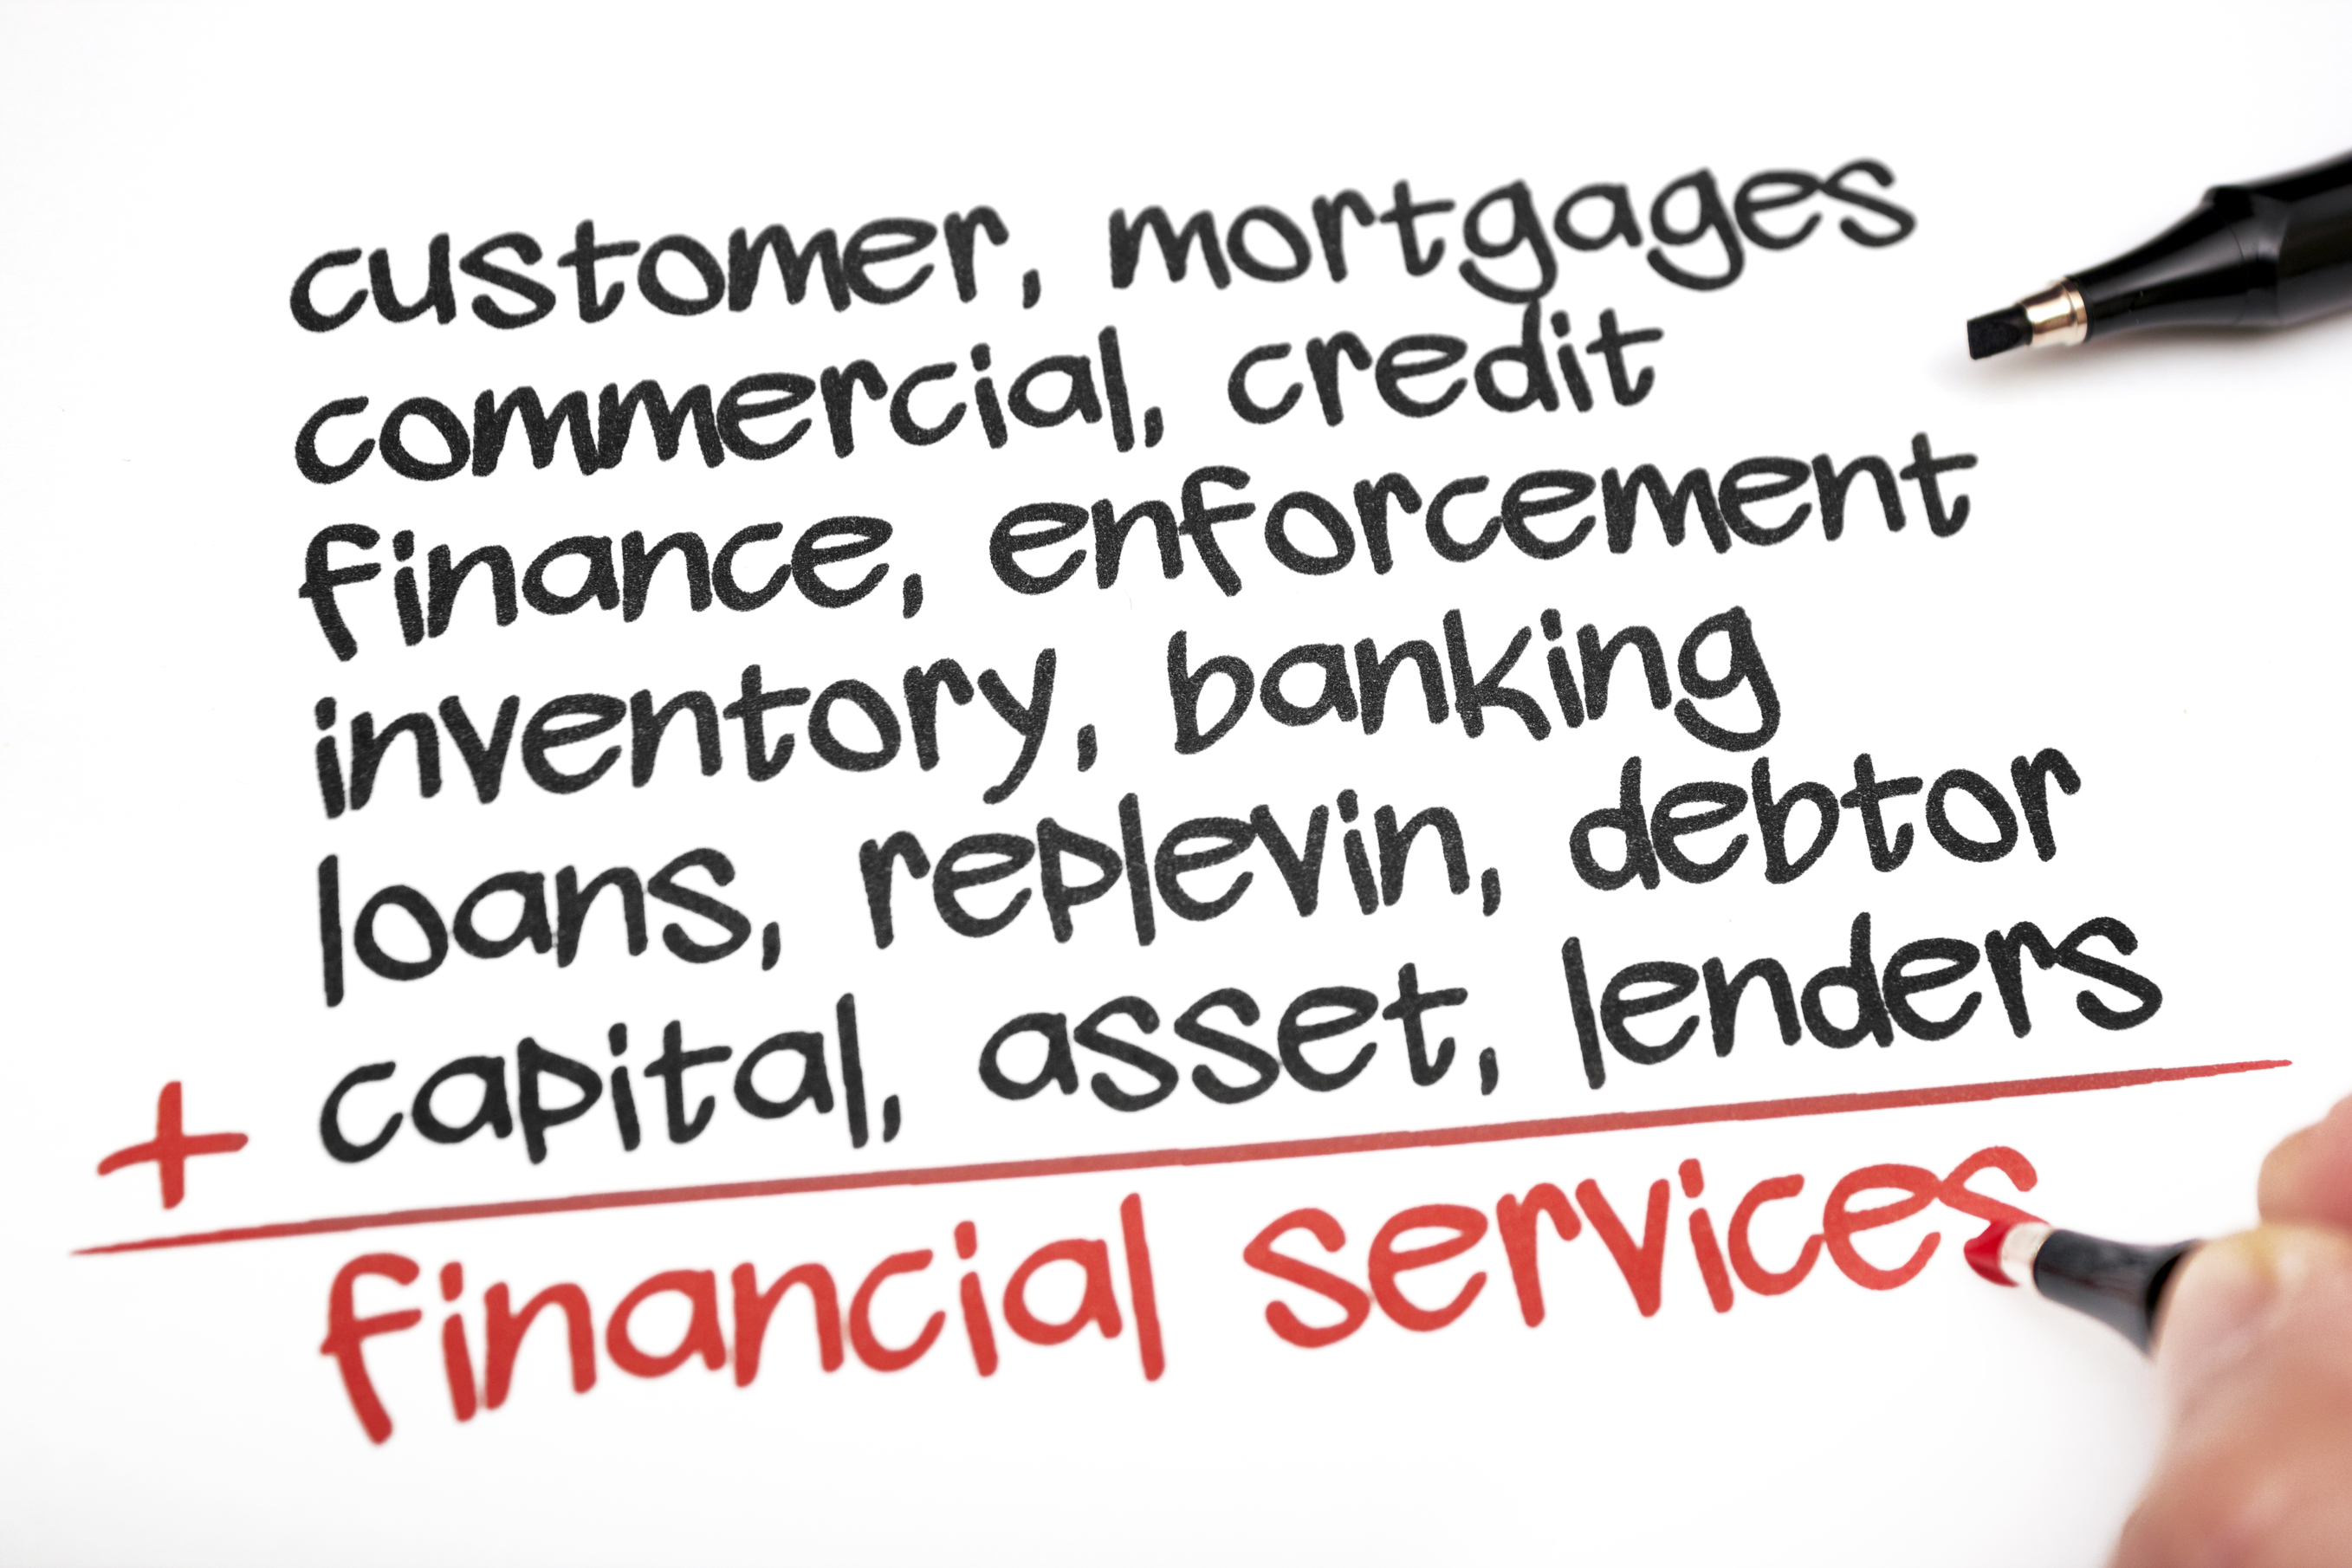 Best mortgage lenders